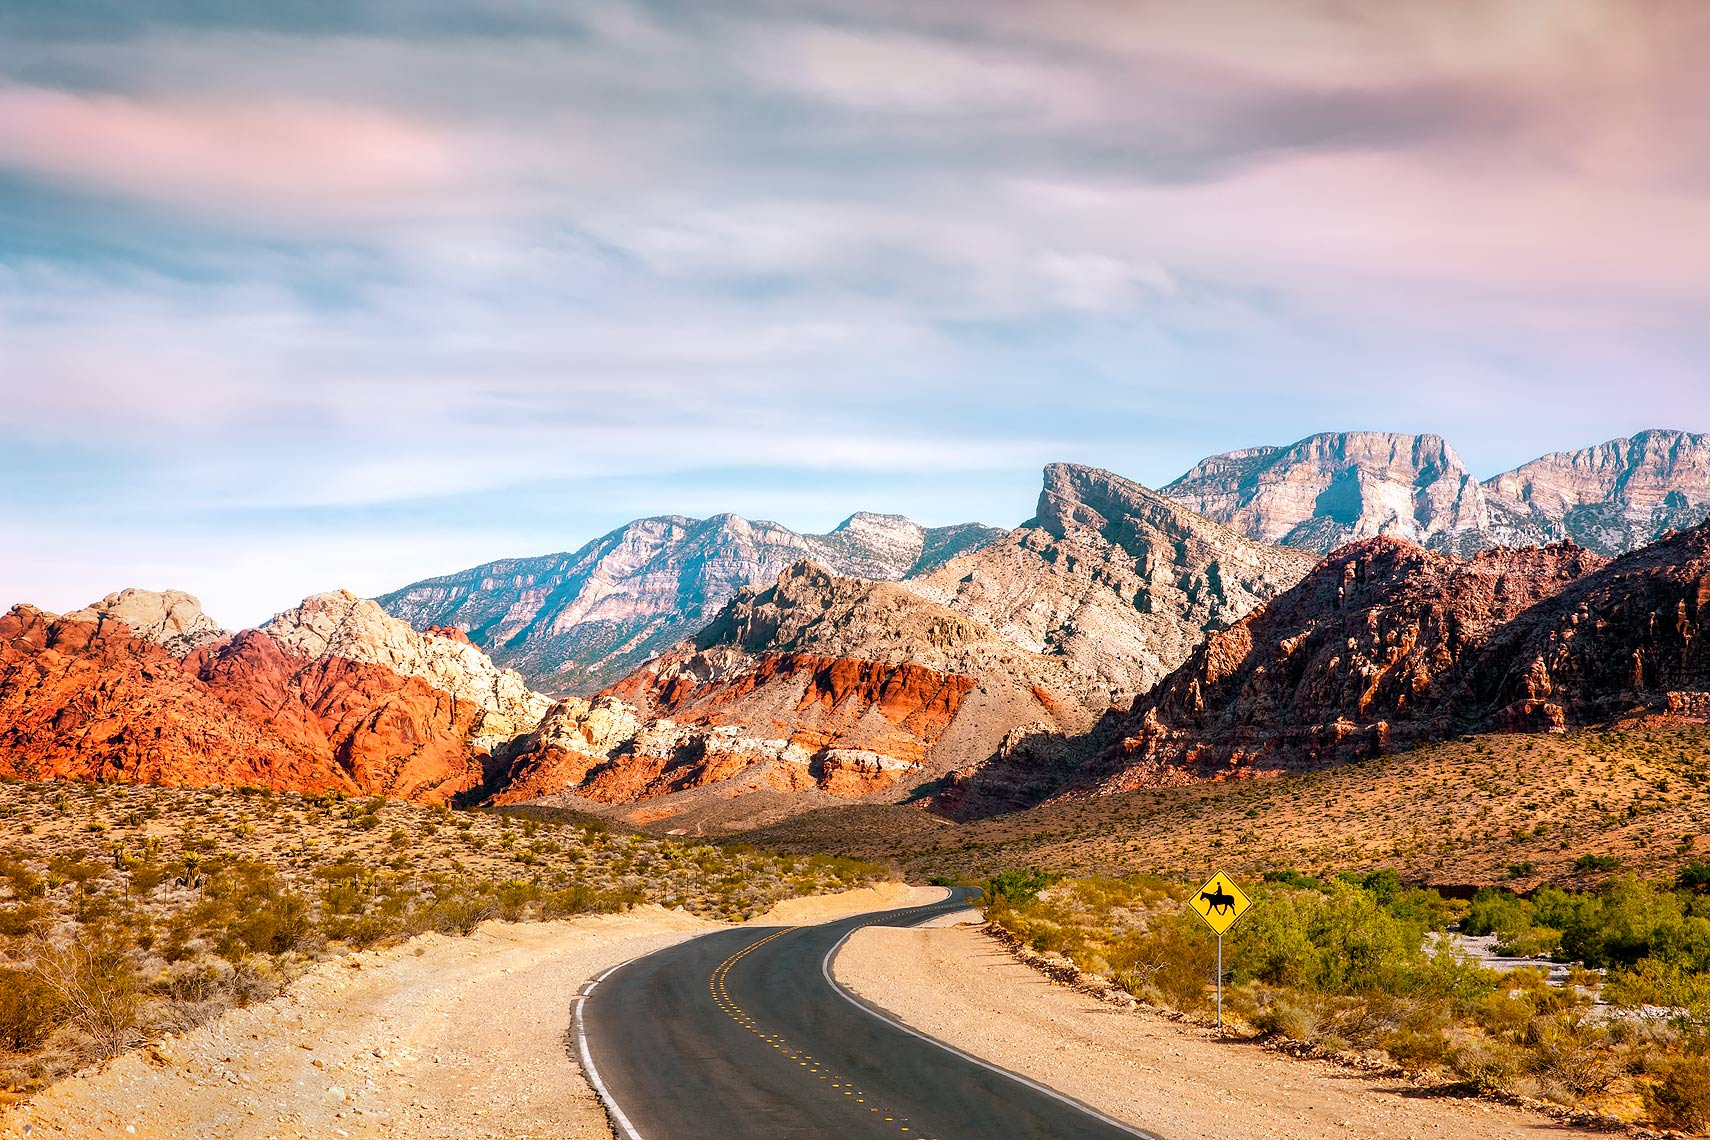 Red Rock Canyon, Nevada, USA - Mojave Desert, Las Vegas